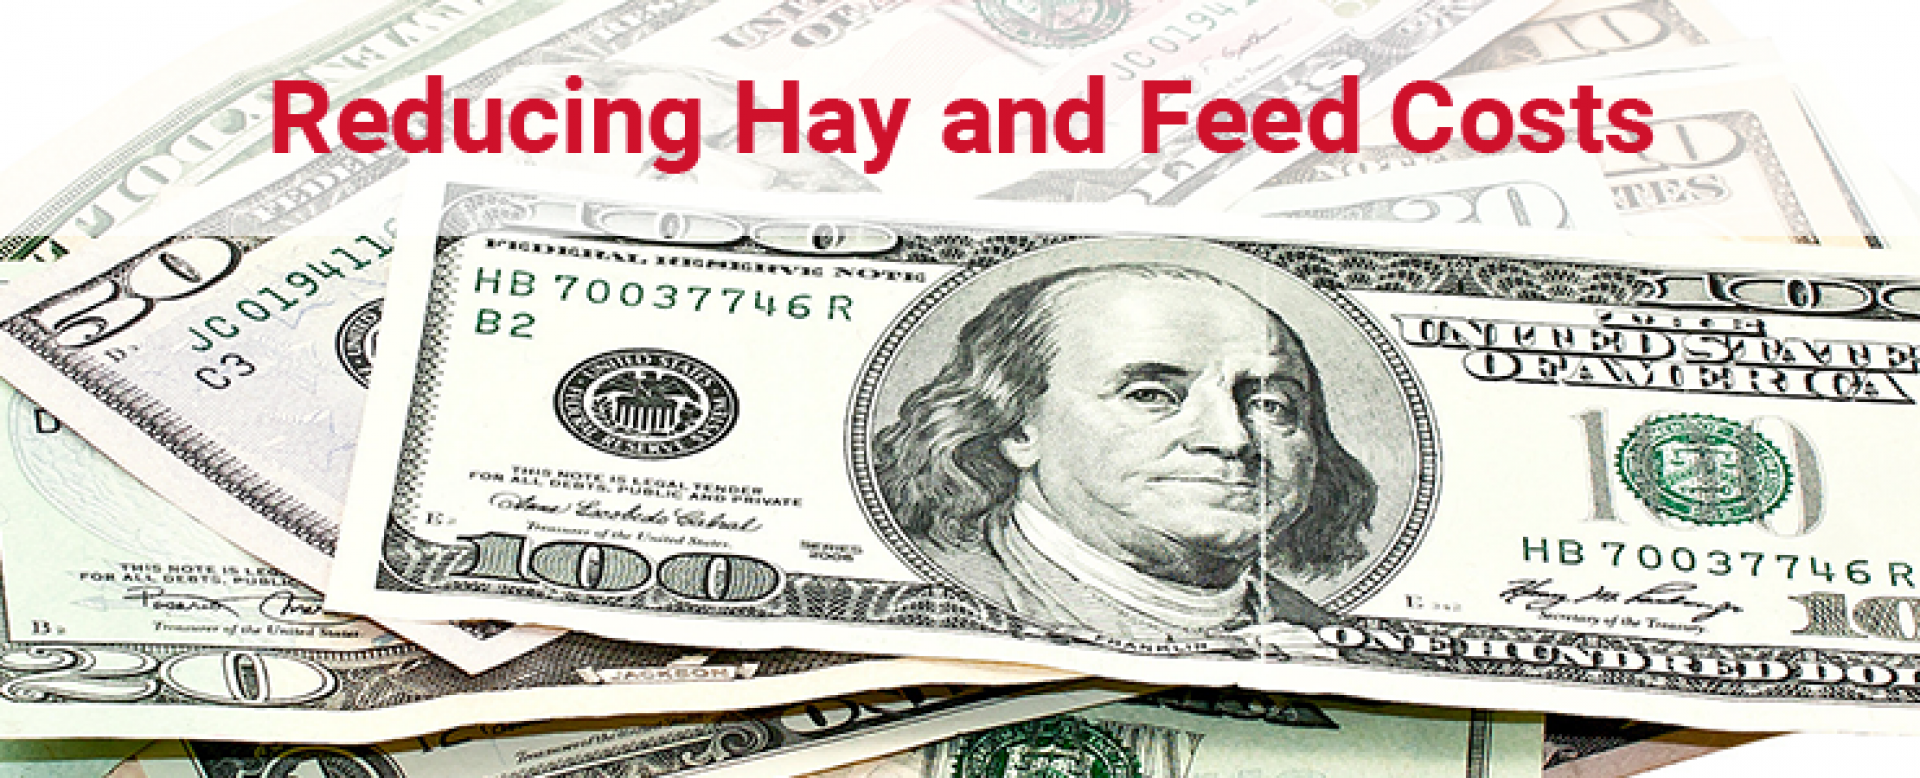 Reducing Hay and Feed Costs